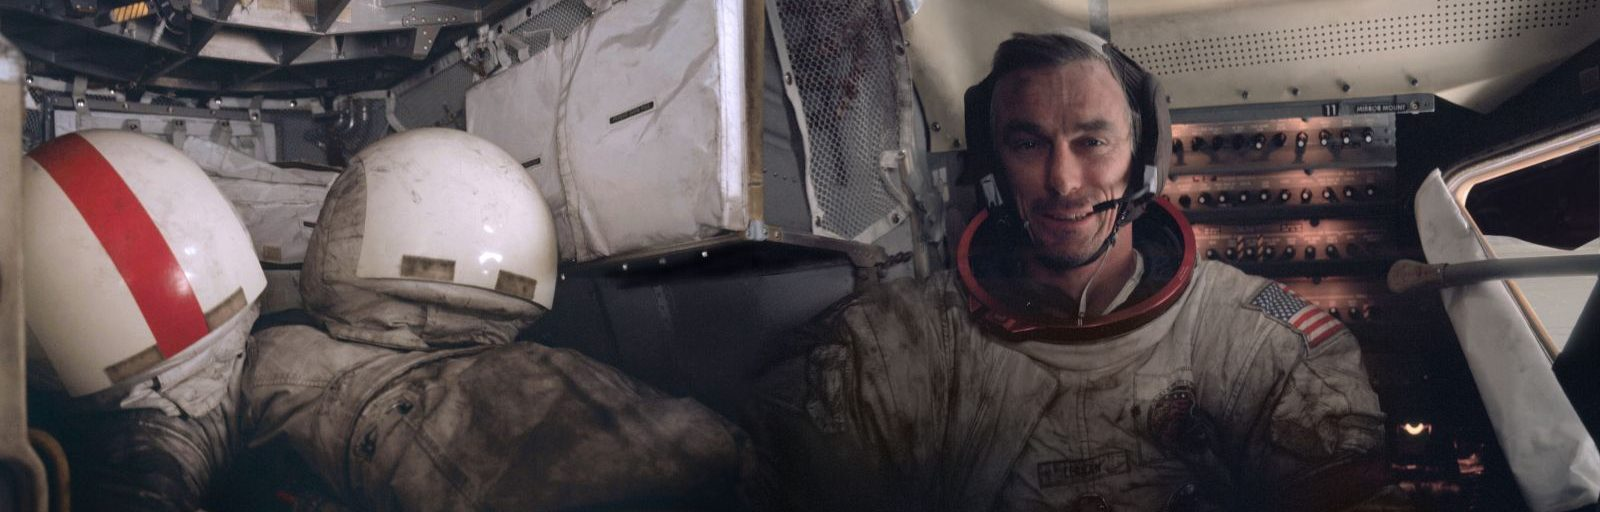 Cernan inside the Lunar Module